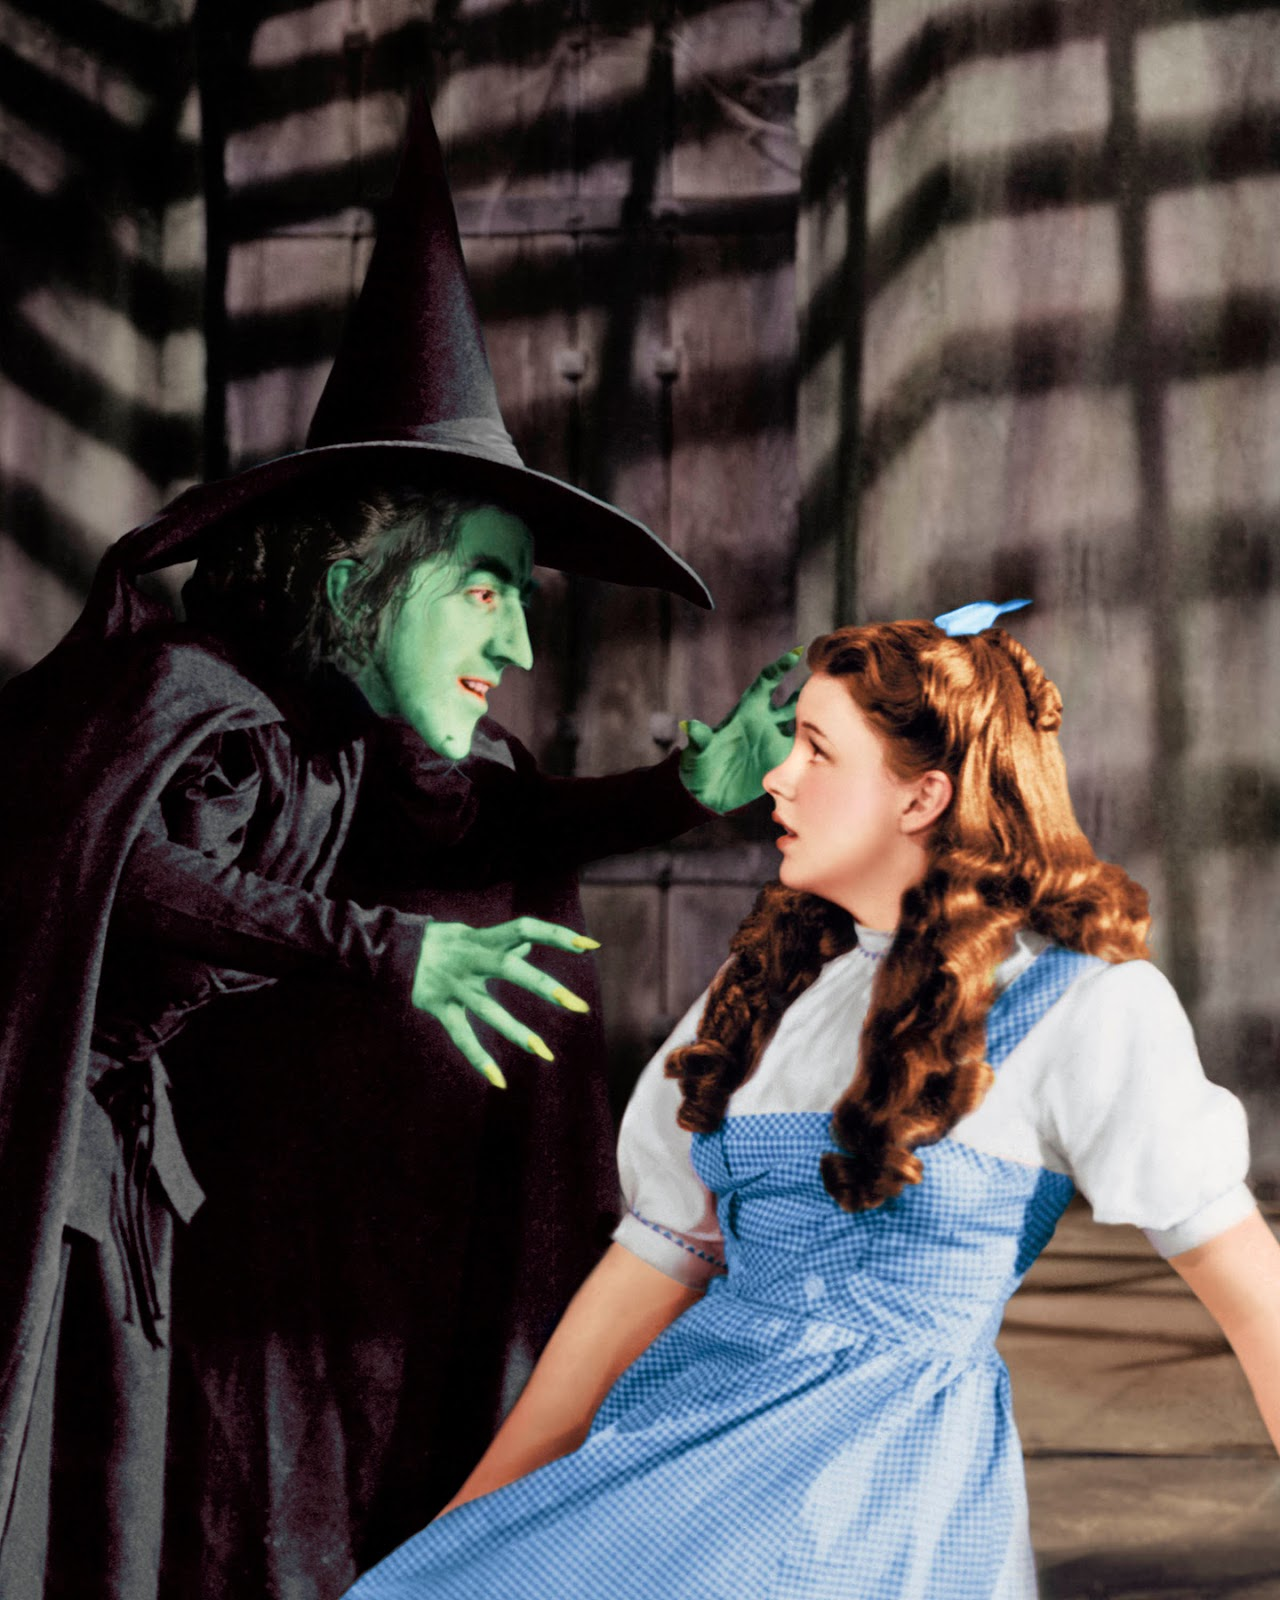 The Costume Of Wicked Witch West